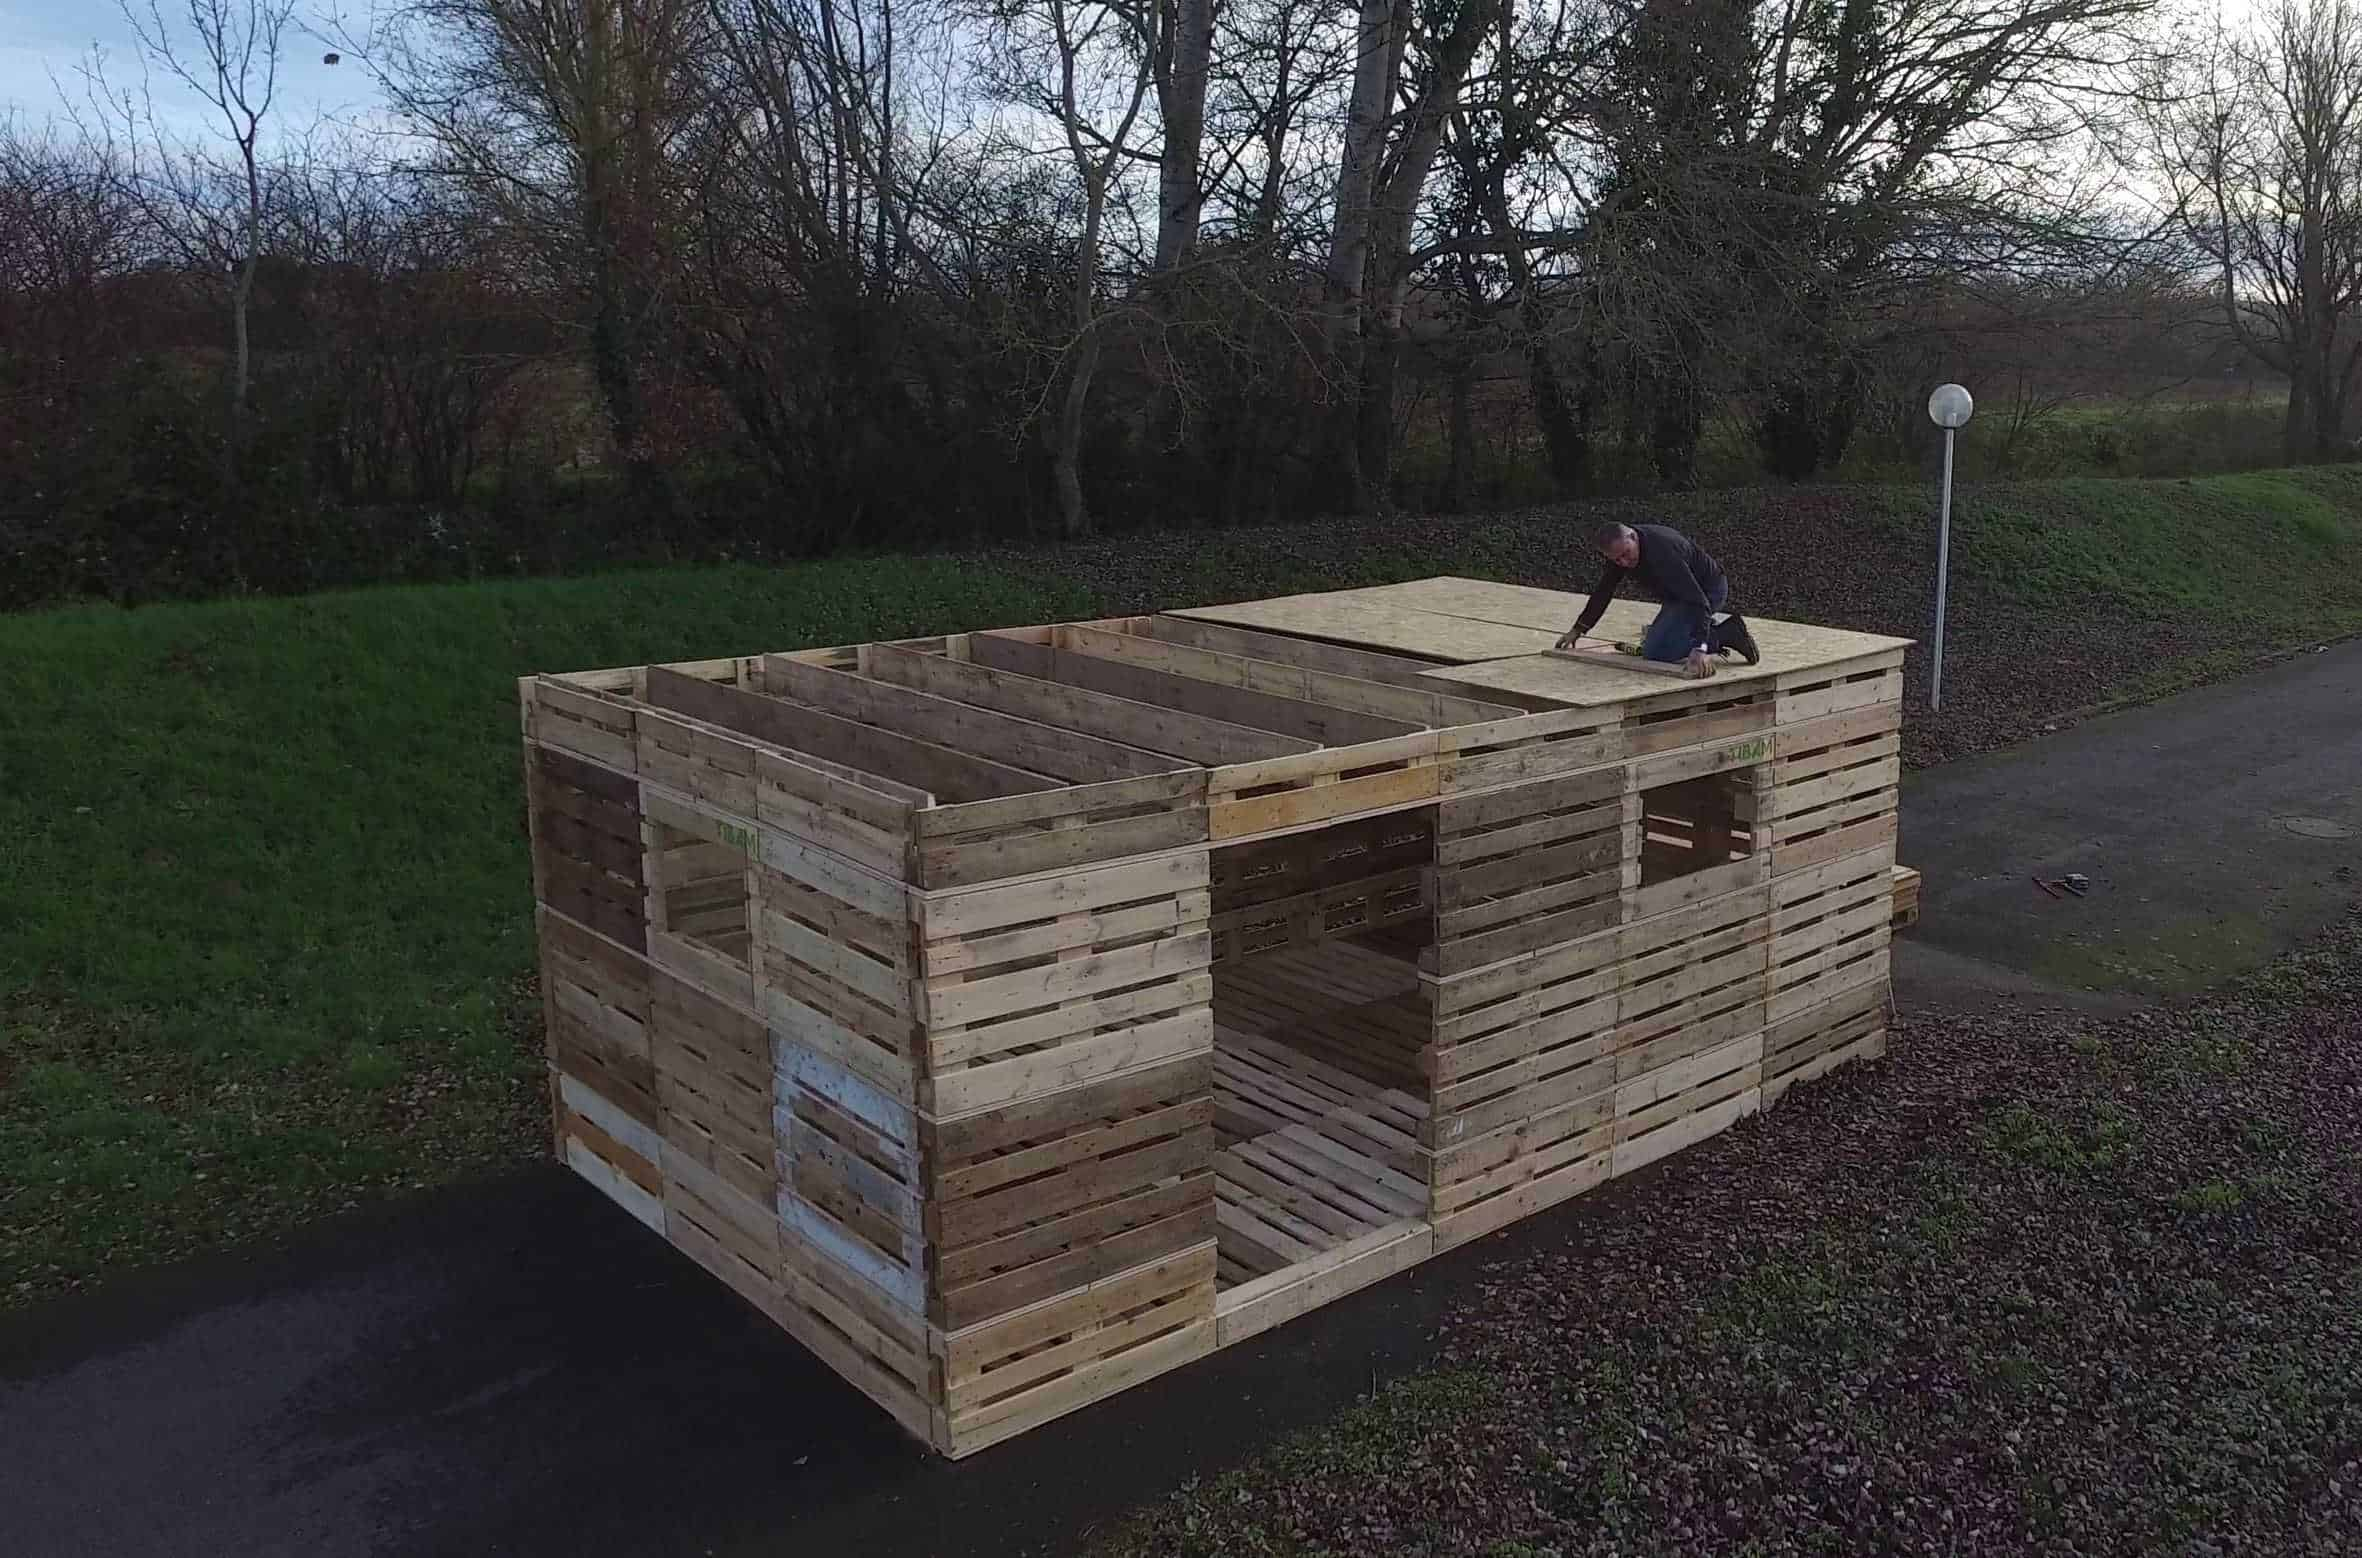 What if you could build a shelter from pallets in one day - Fabriquer un abri bois avec des palettes ...